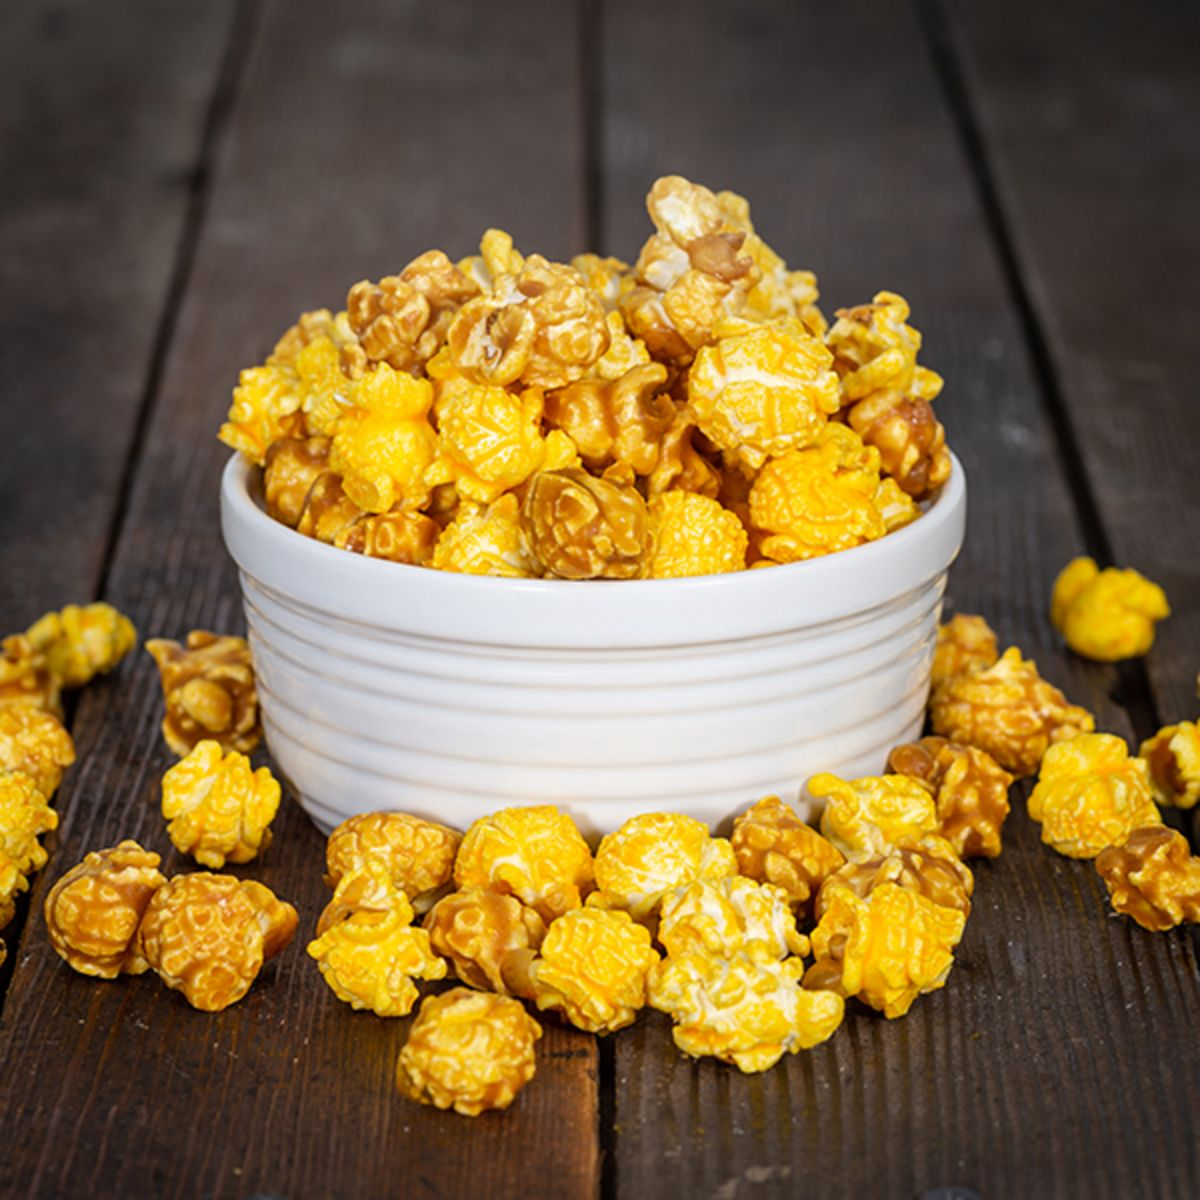 Pease's Cheese and Caramel Popcorn Mix